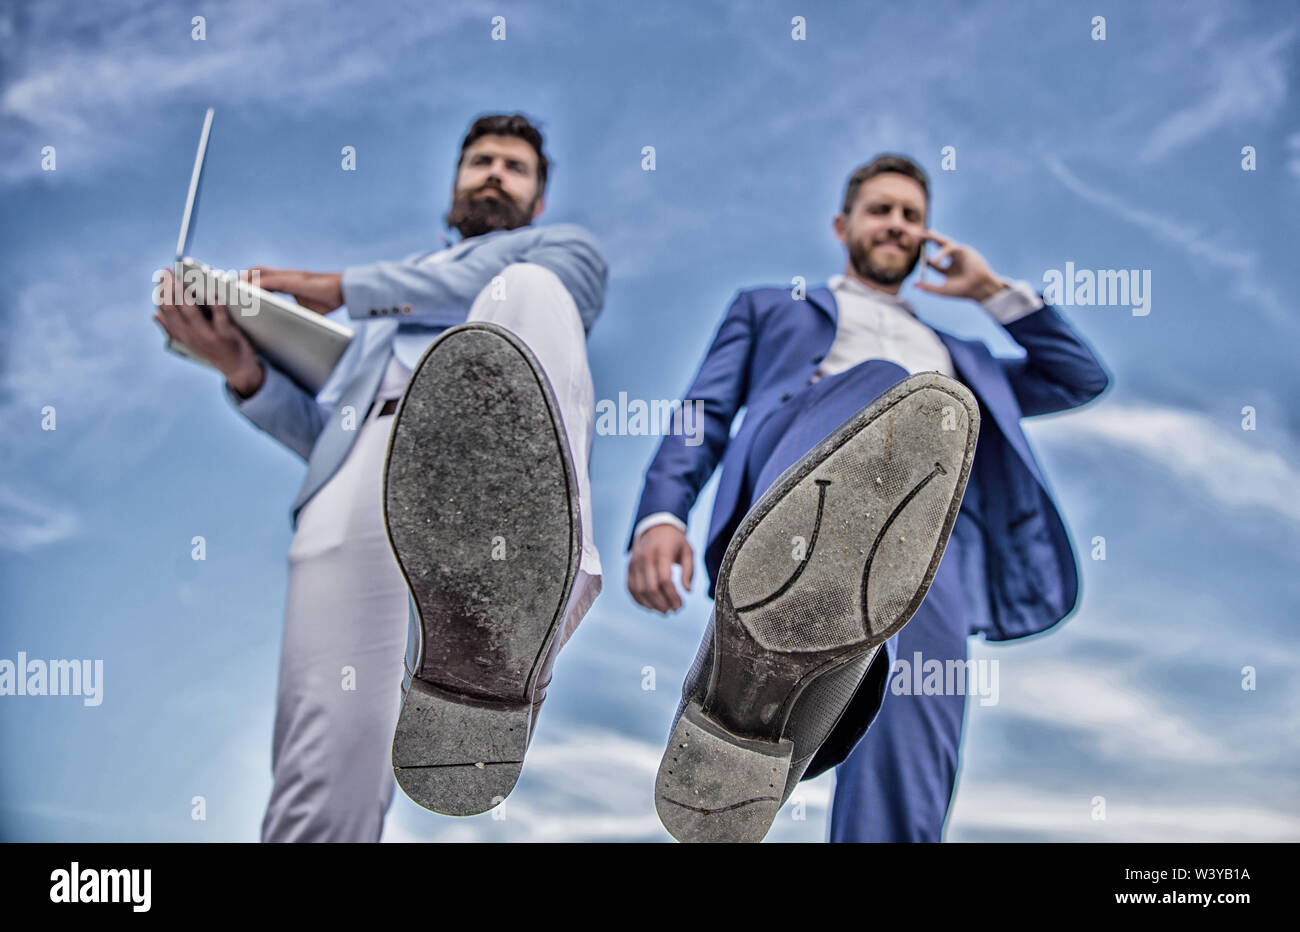 Businessmen making step bottom view. Business technologies coming. Big step for entrepreneurship. Smashing competitiveness. Business partner busy with phone call moving forward, foot shoe close up. - Stock Image